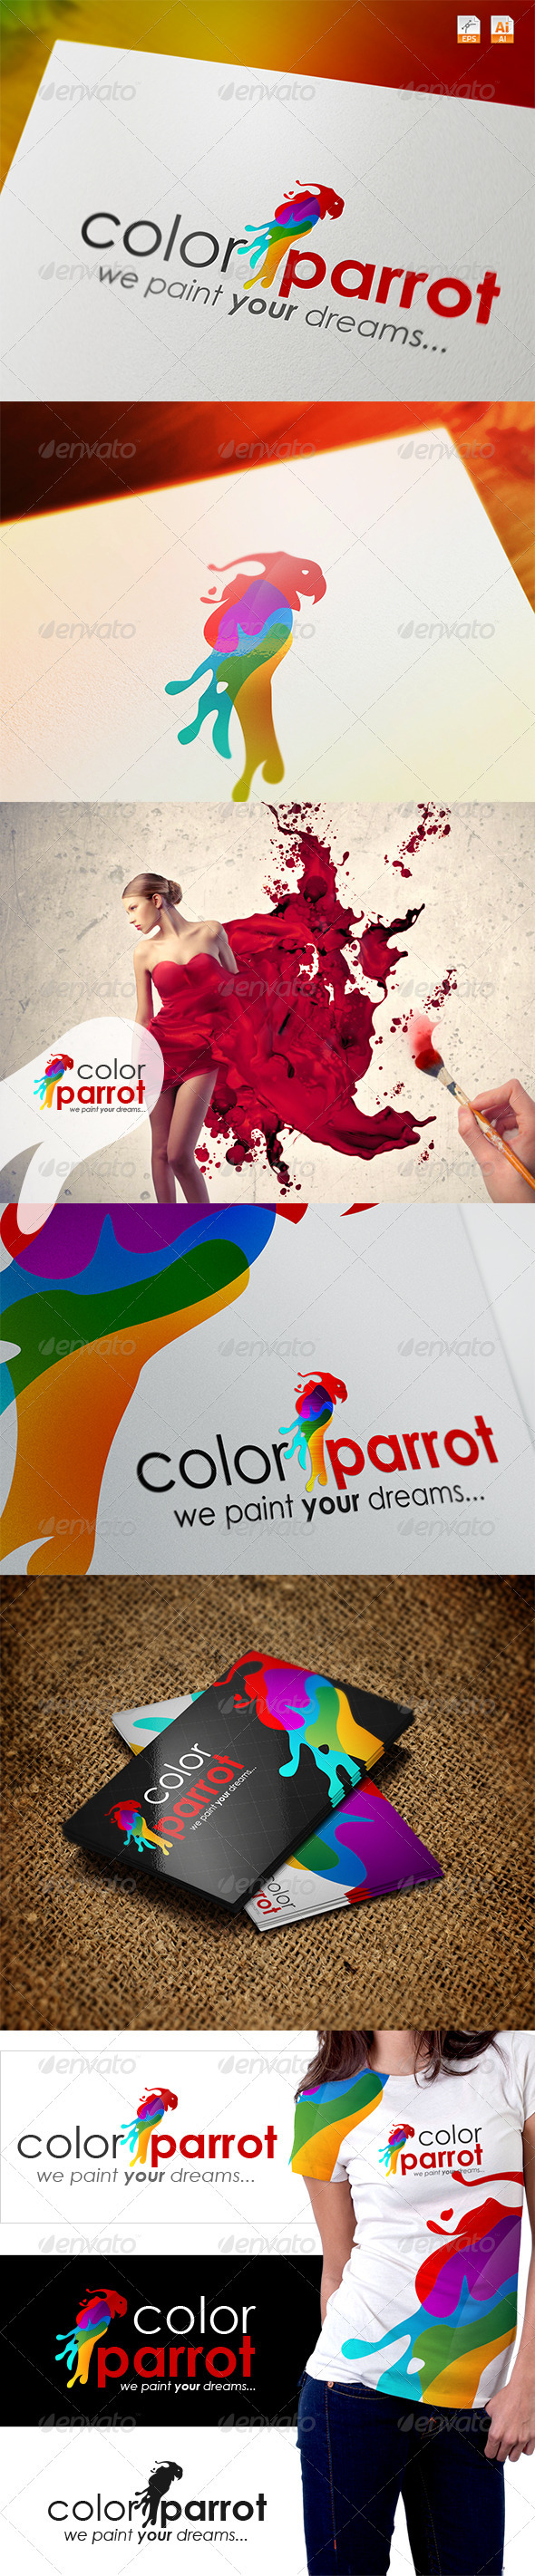 Color Parrot - We Paint Your Dreams Logo - Vector Abstract